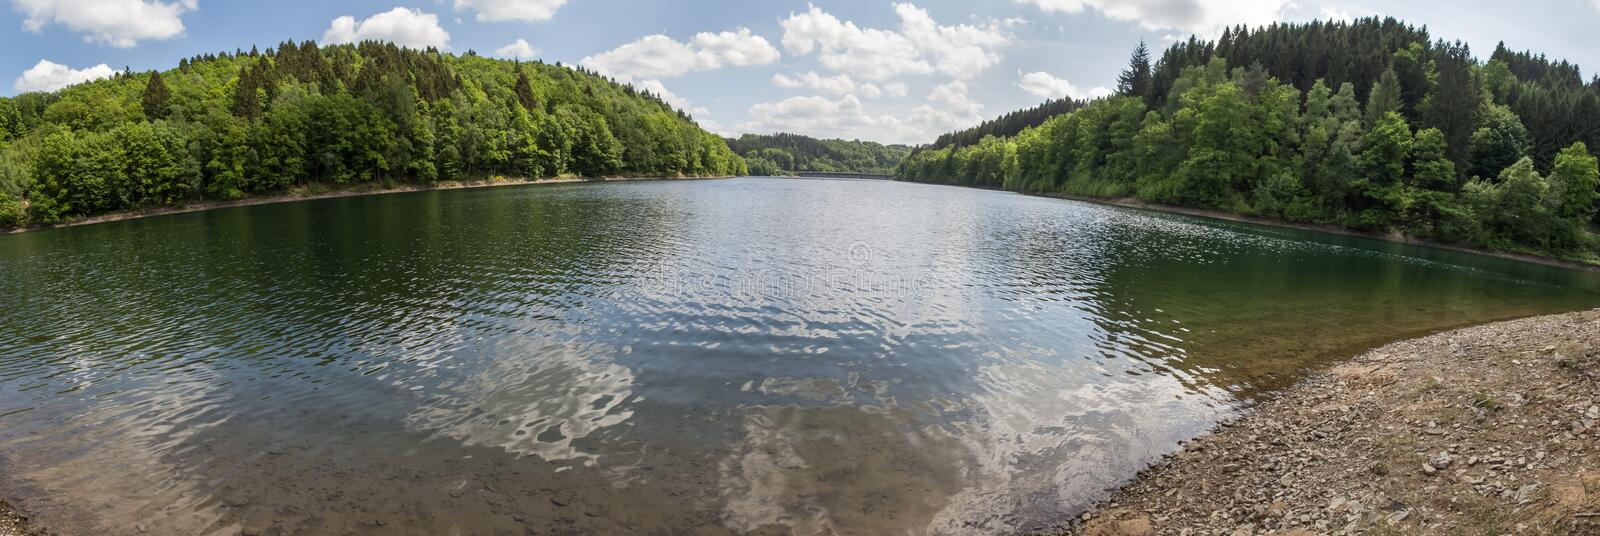 aggertalsperre lake germany high definition panorama stock images